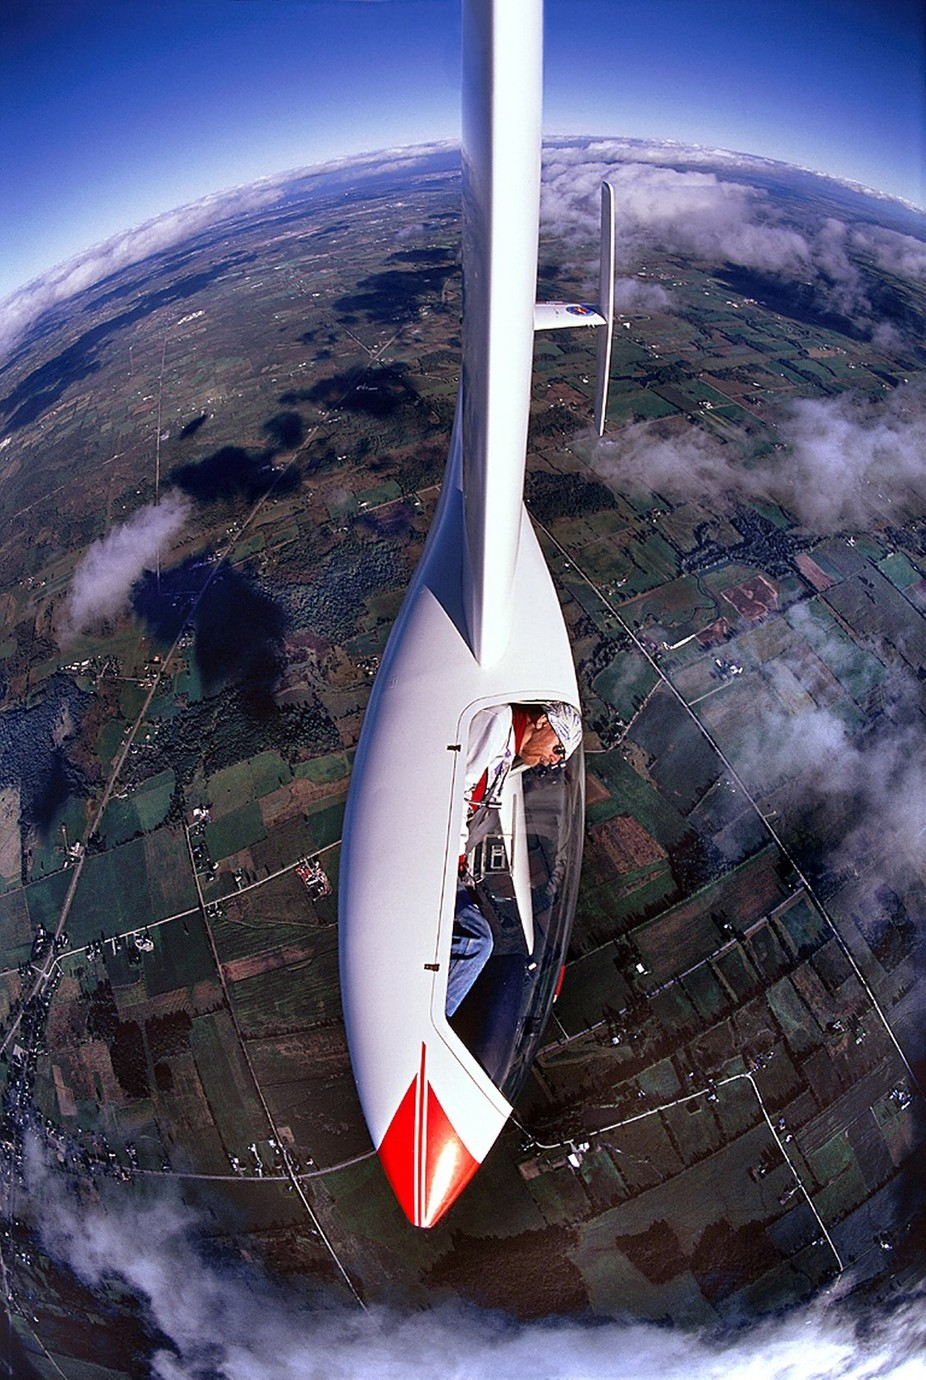 Soaring by stephenliard - Clever Angles Photo Contest